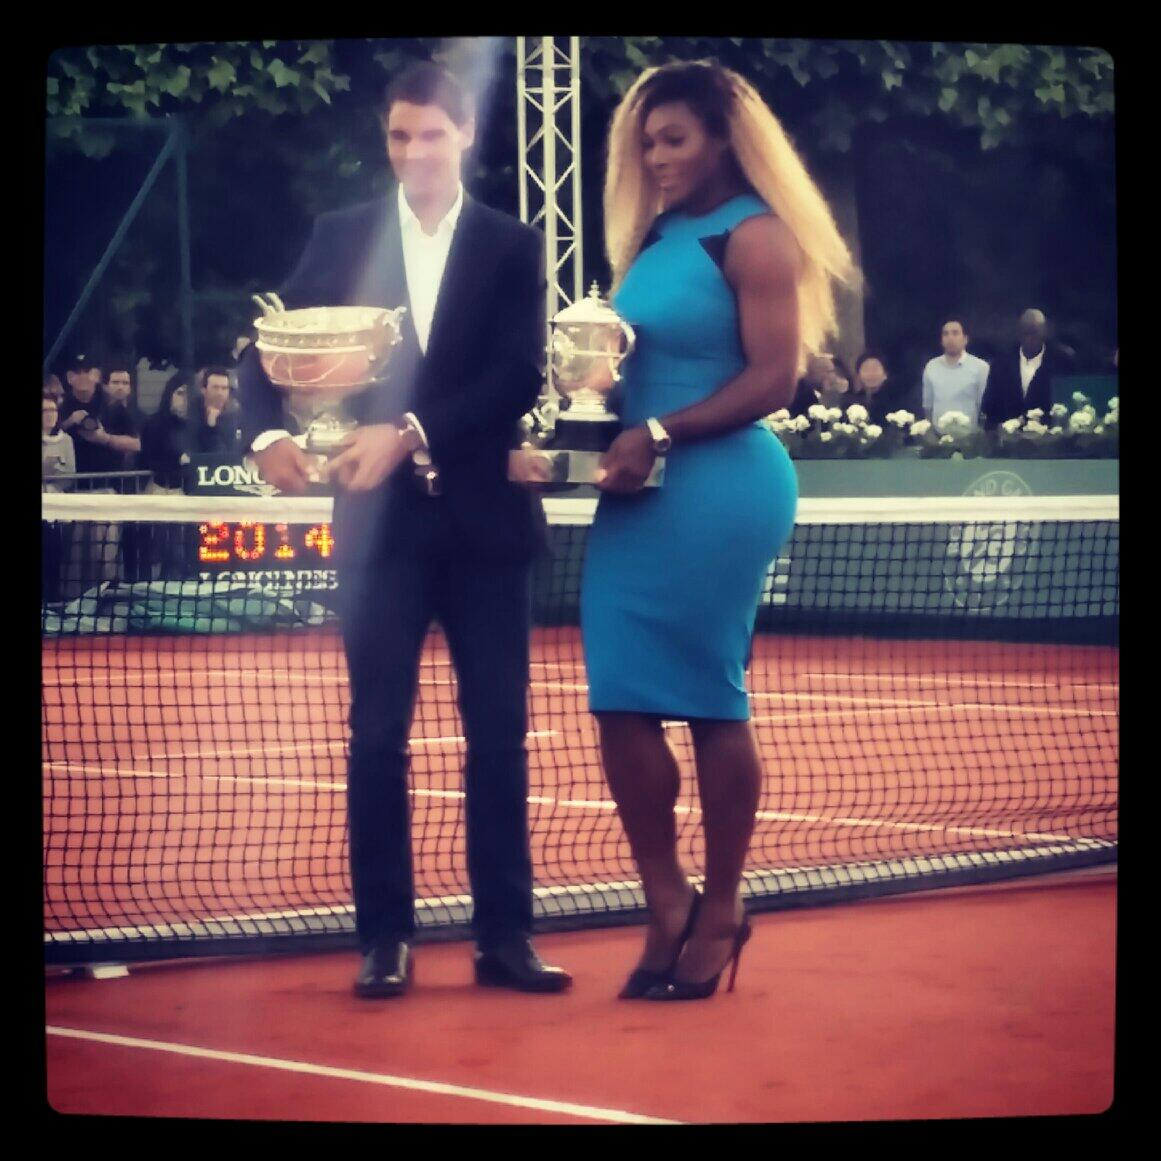 draw - Roland Garros 2014: THE DRAW IS OUT/Order of Play - Page 2 BoQ-fTvCYAMk-kc